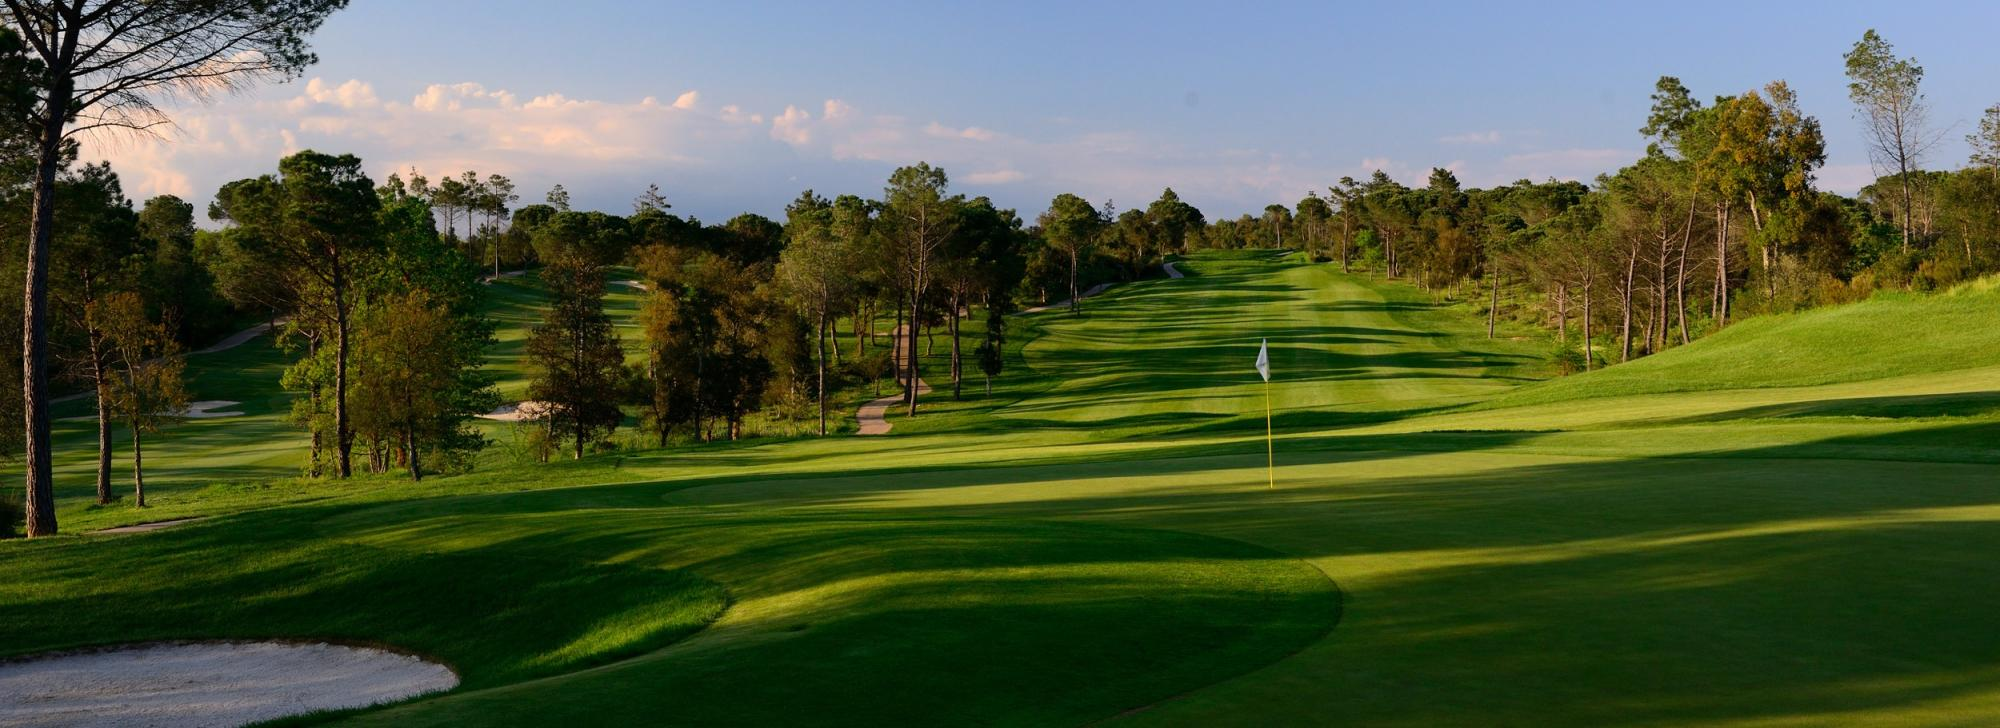 The PGA Catalunya Tour Course easily impressive as the sister course